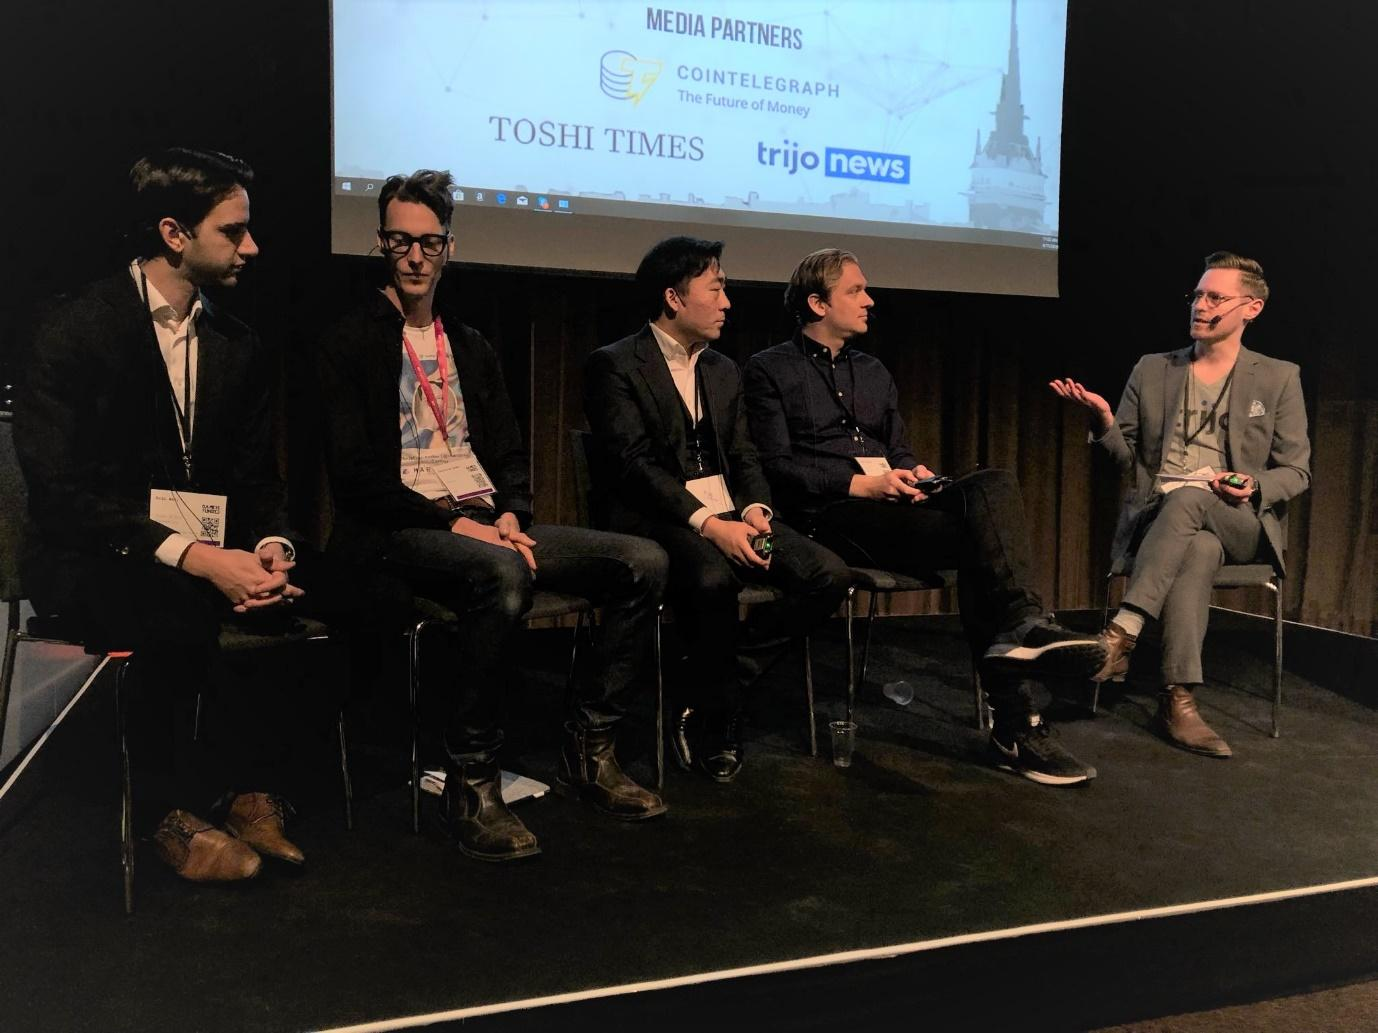 Eric Wall, Christian Ander, Jimmy Zhao, and Frank Schuil discussing Centralized VS Decentralized exchanges. The panel was moderated by Totte Löfström from Trijo News. (Picture Credit: Trijo News)